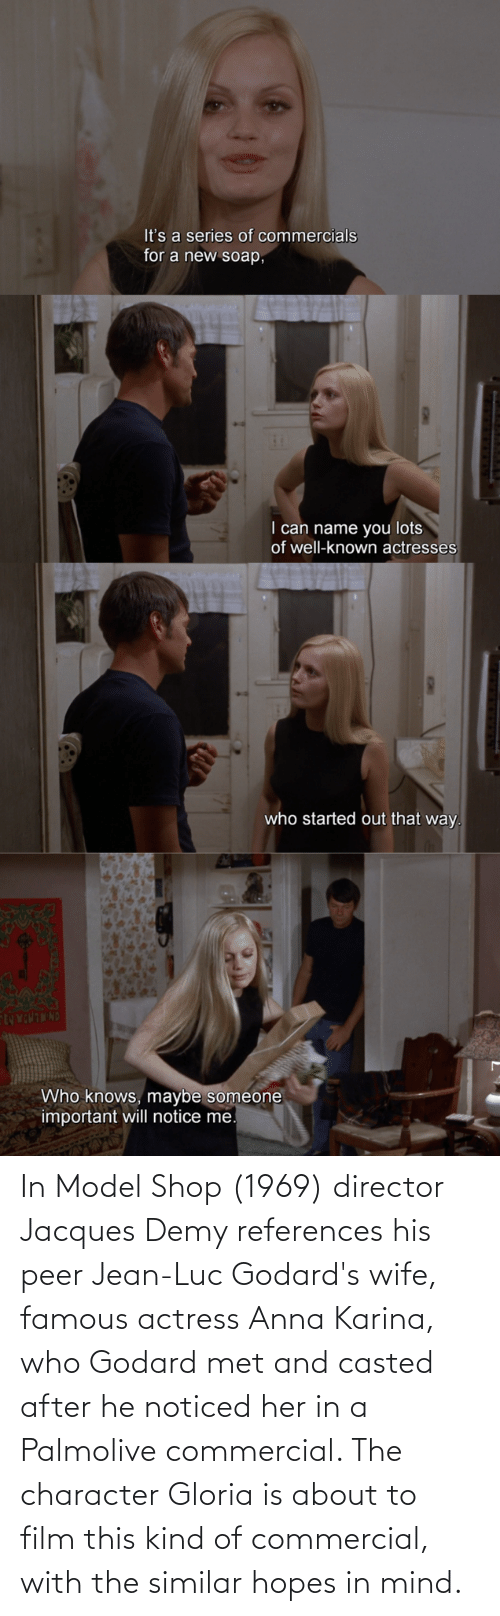 peer: In Model Shop (1969) director Jacques Demy references his peer Jean-Luc Godard's wife, famous actress Anna Karina, who Godard met and casted after he noticed her in a Palmolive commercial. The character Gloria is about to film this kind of commercial, with the similar hopes in mind.